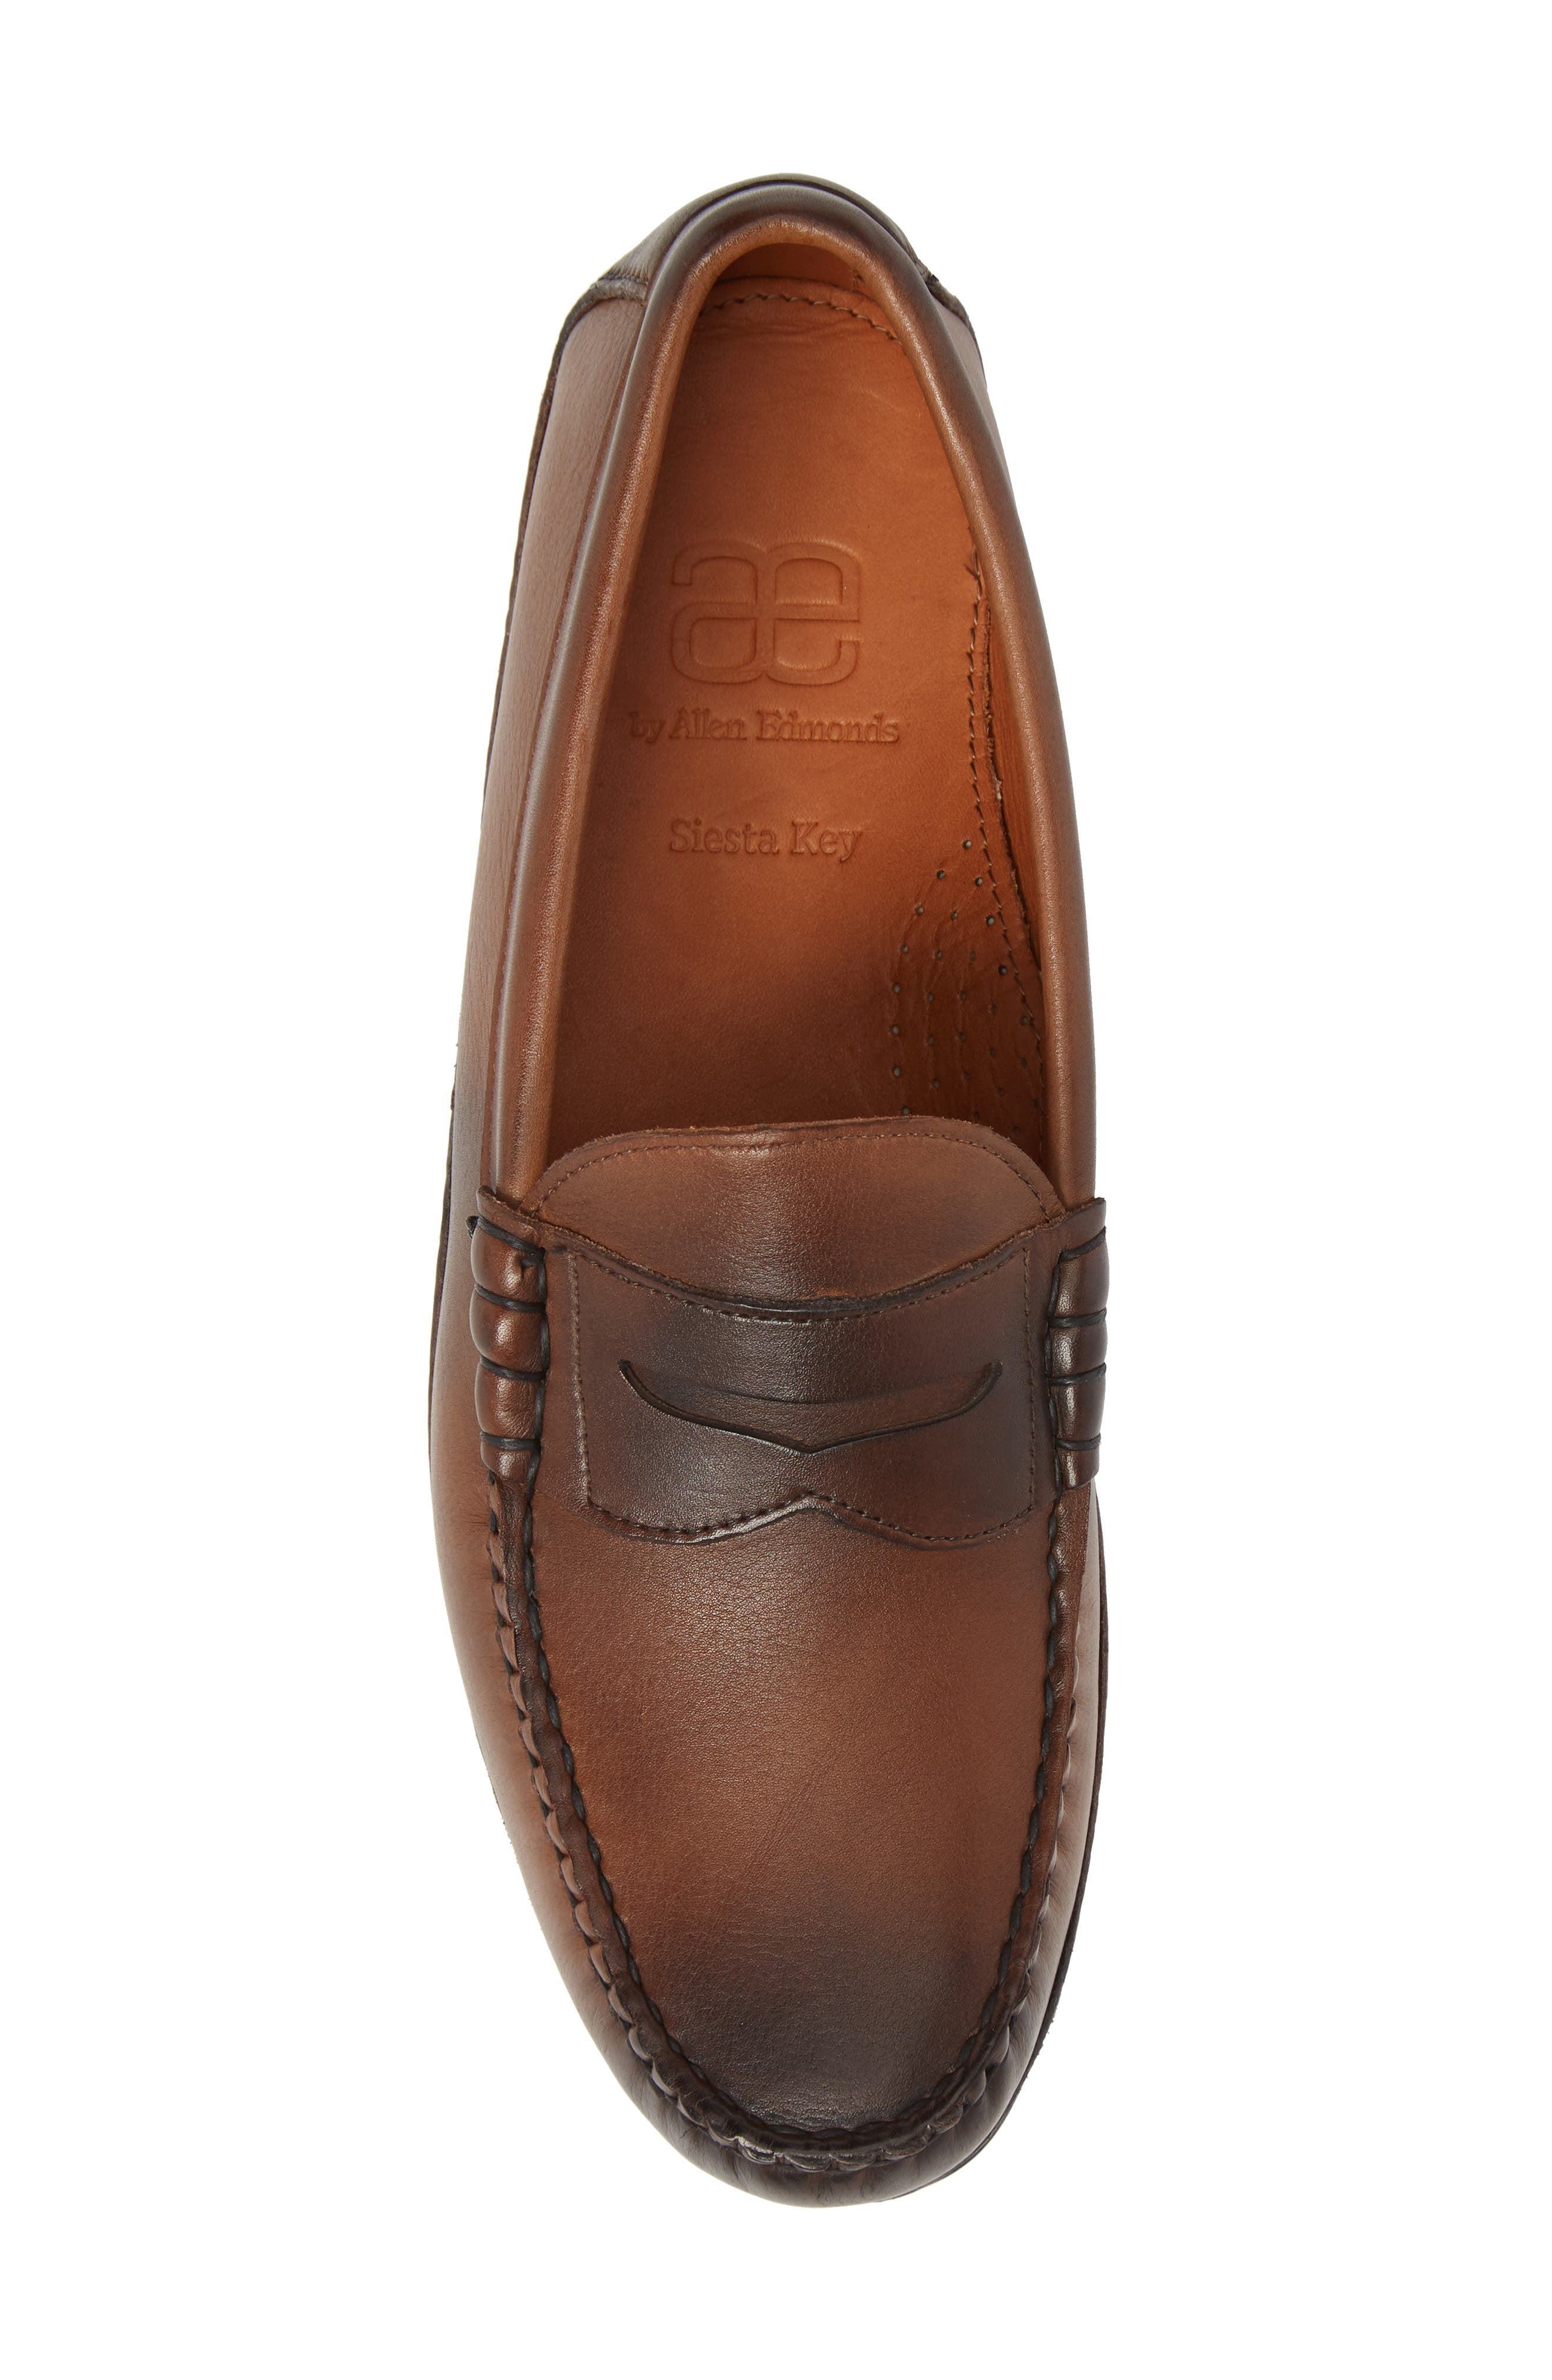 Siesta Key Penny Loafer,                             Alternate thumbnail 5, color,                             Brown Leather